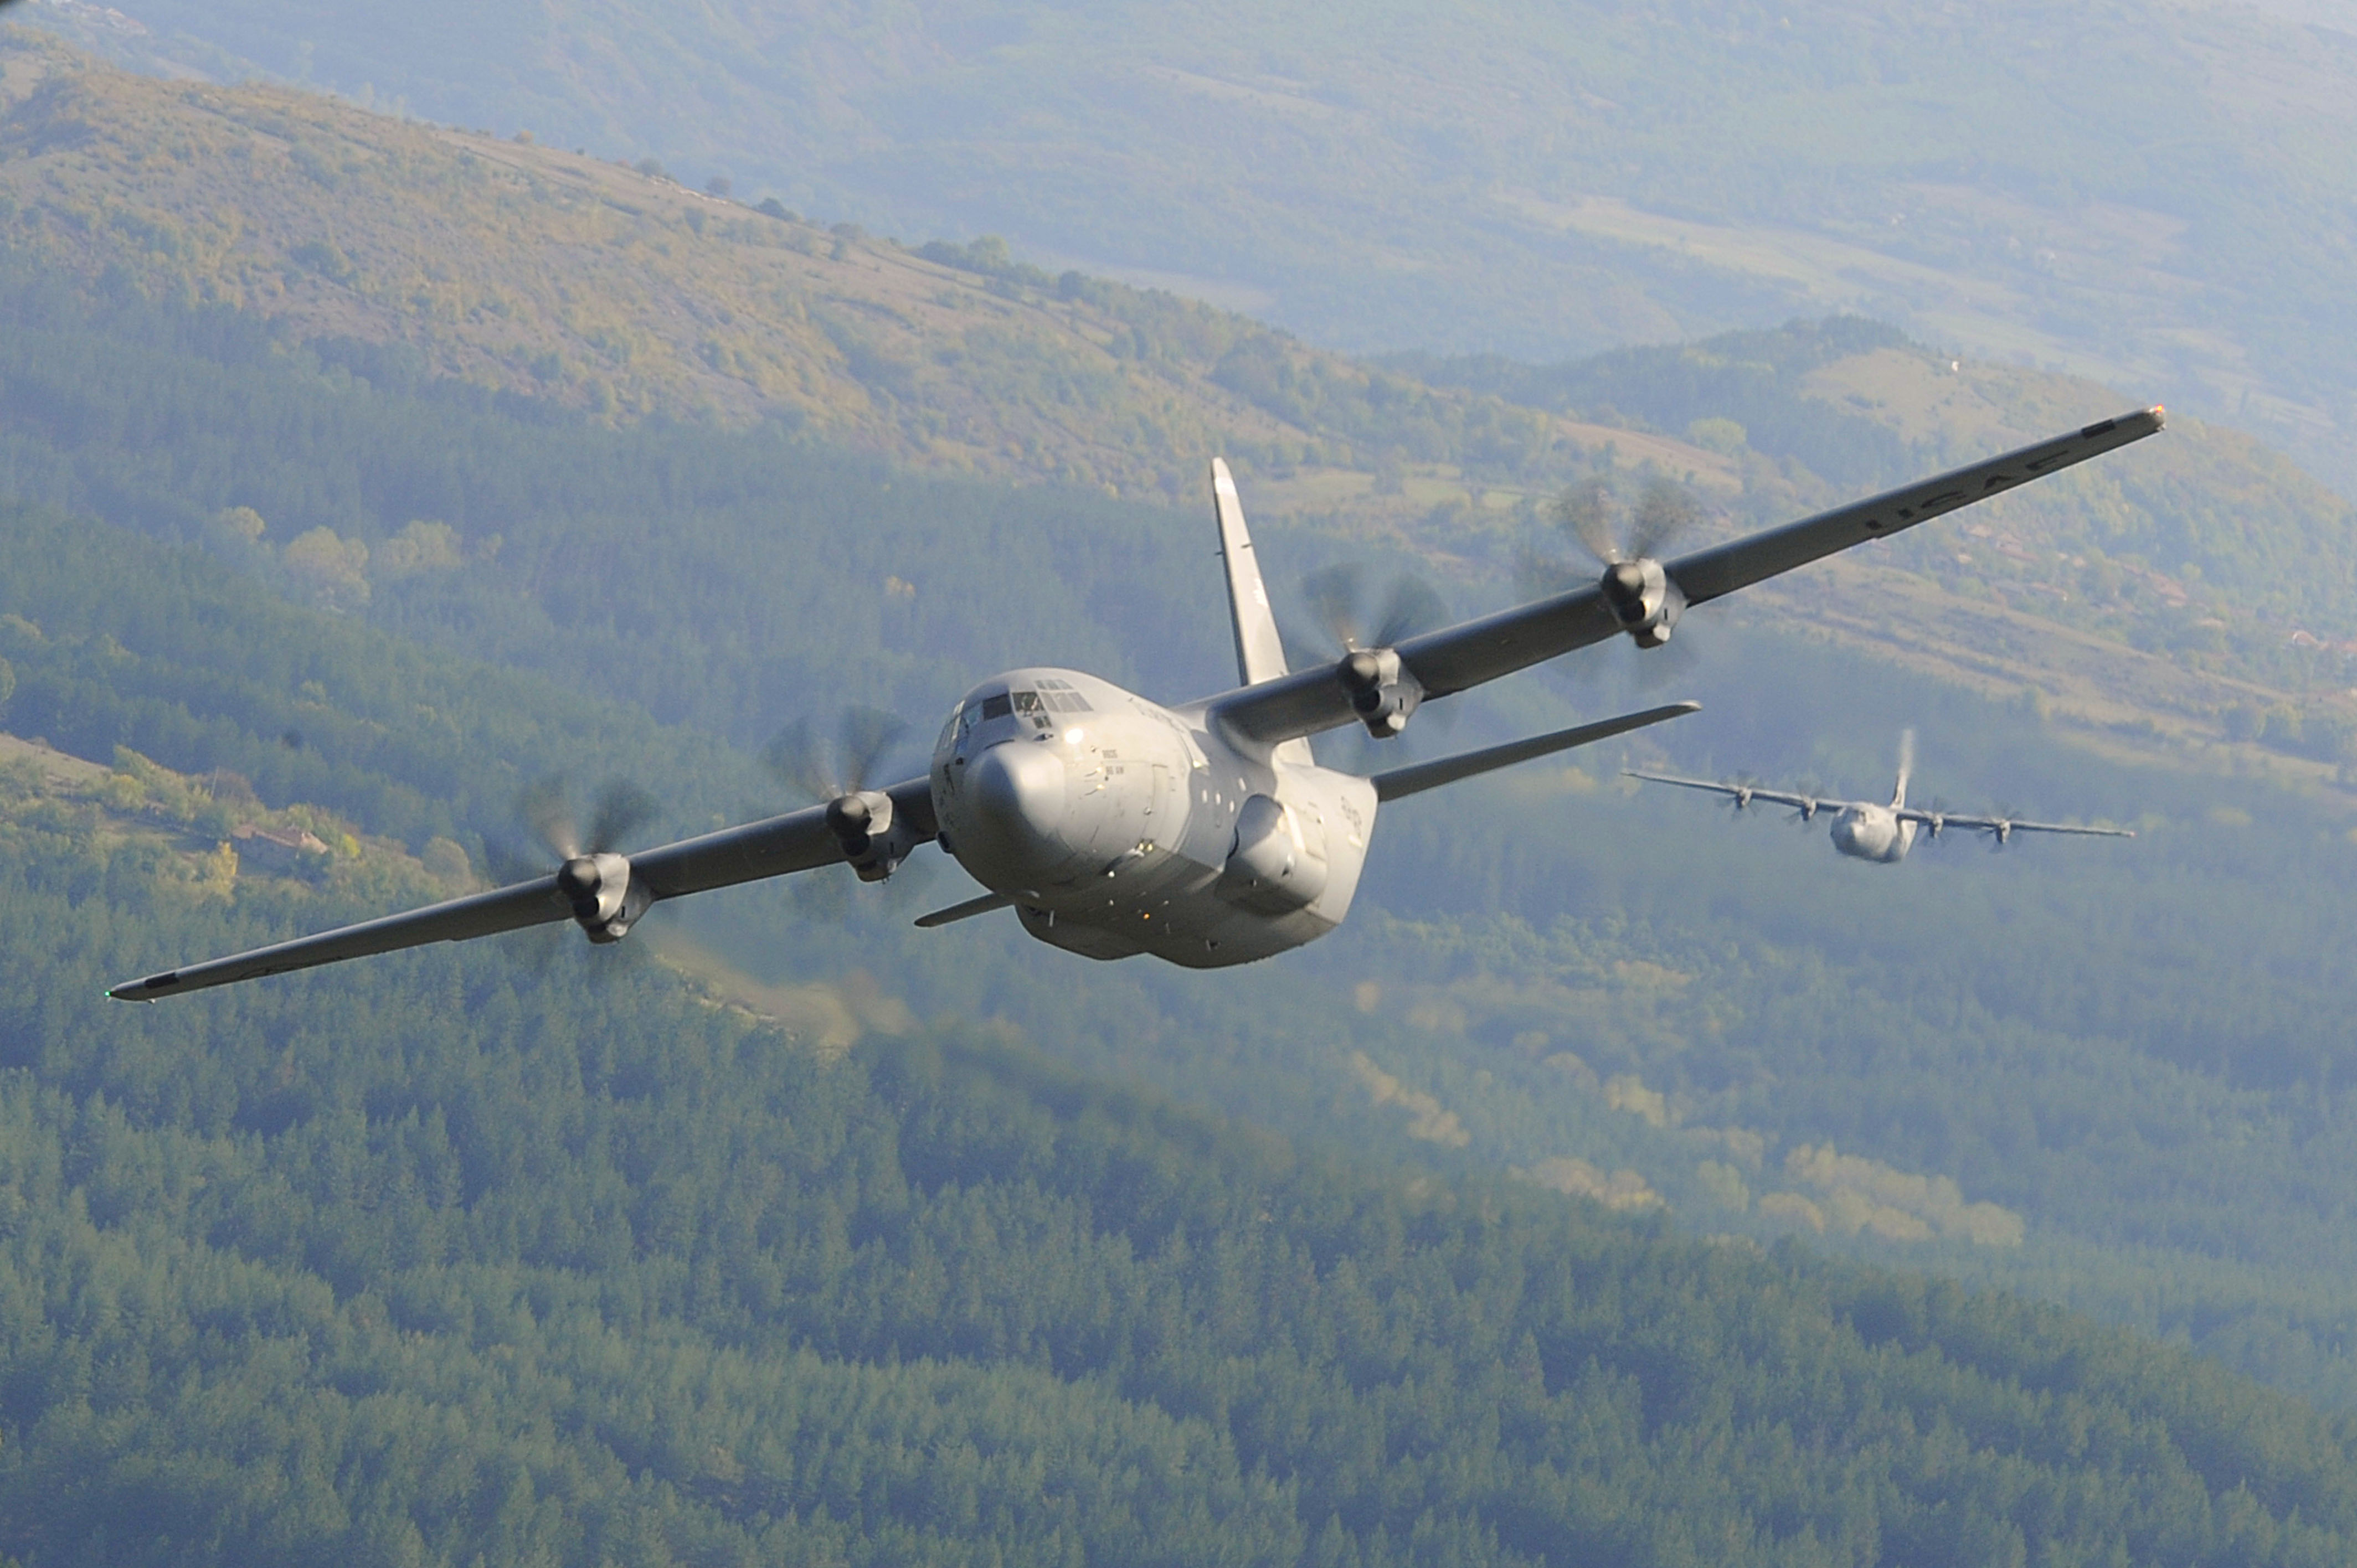 rc plane video with File C 130j Formation Low Level on Buyplaneparts additionally Rutanboomerang additionally File C 130J formation low Level together with 67998 Mh 47g Chinook furthermore Weird Looking Aircraft Dont Look Like Able Fly.